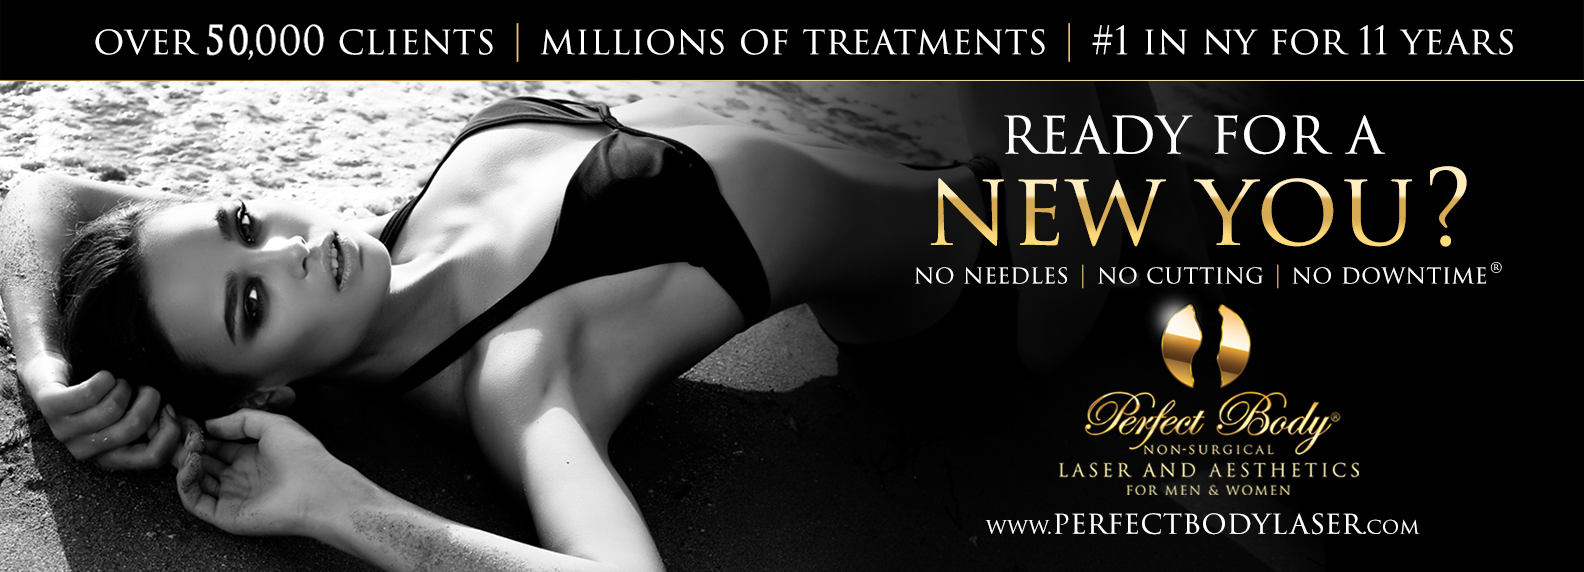 Perfect Body Laser and Aesthetics reviews | Medical Spas at 1150 Sunrise Hwy - Bay Shore NY